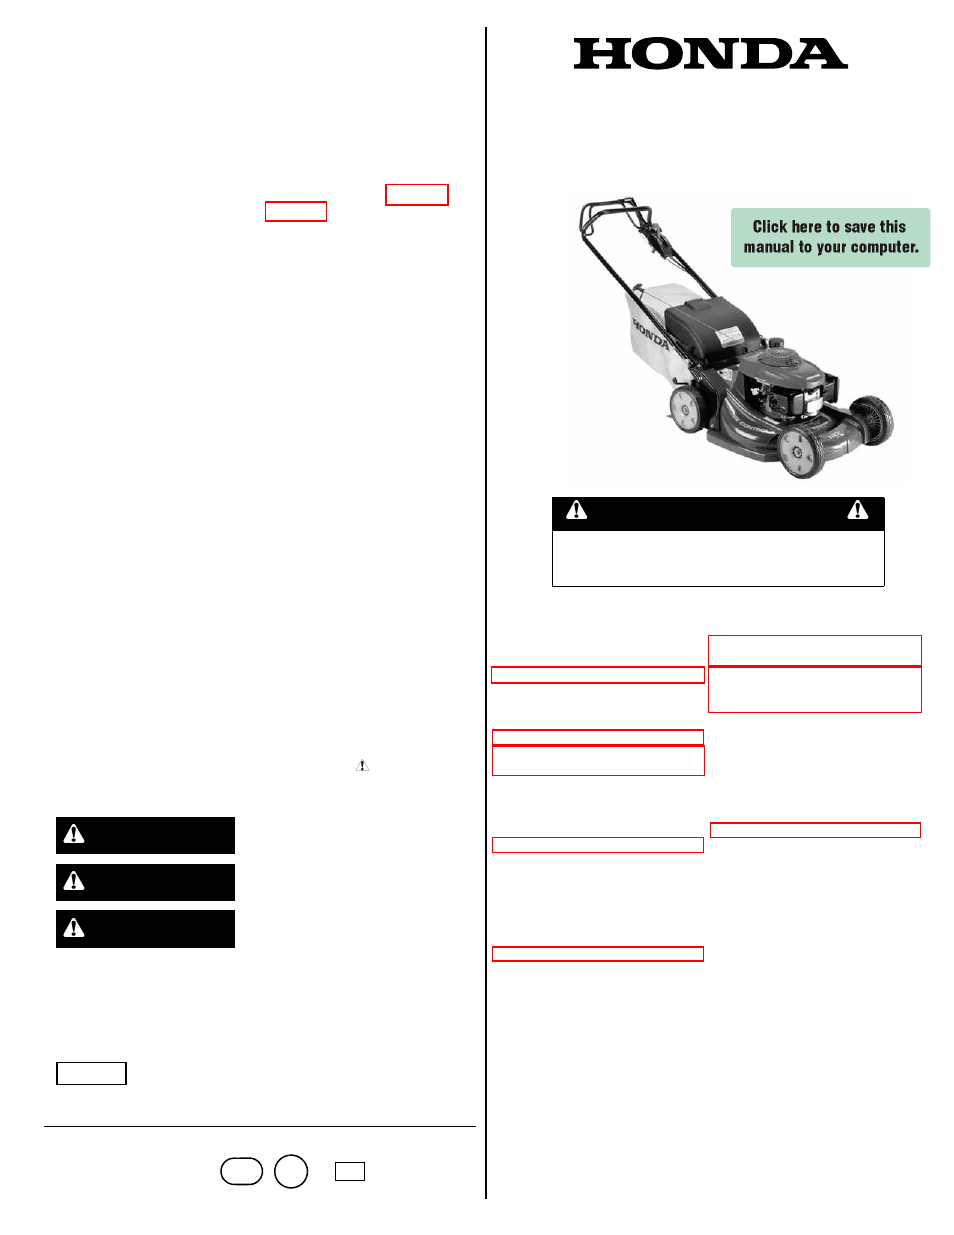 Honda Hrx217hxa User Manual 24 Pages Also For Hrx217hma